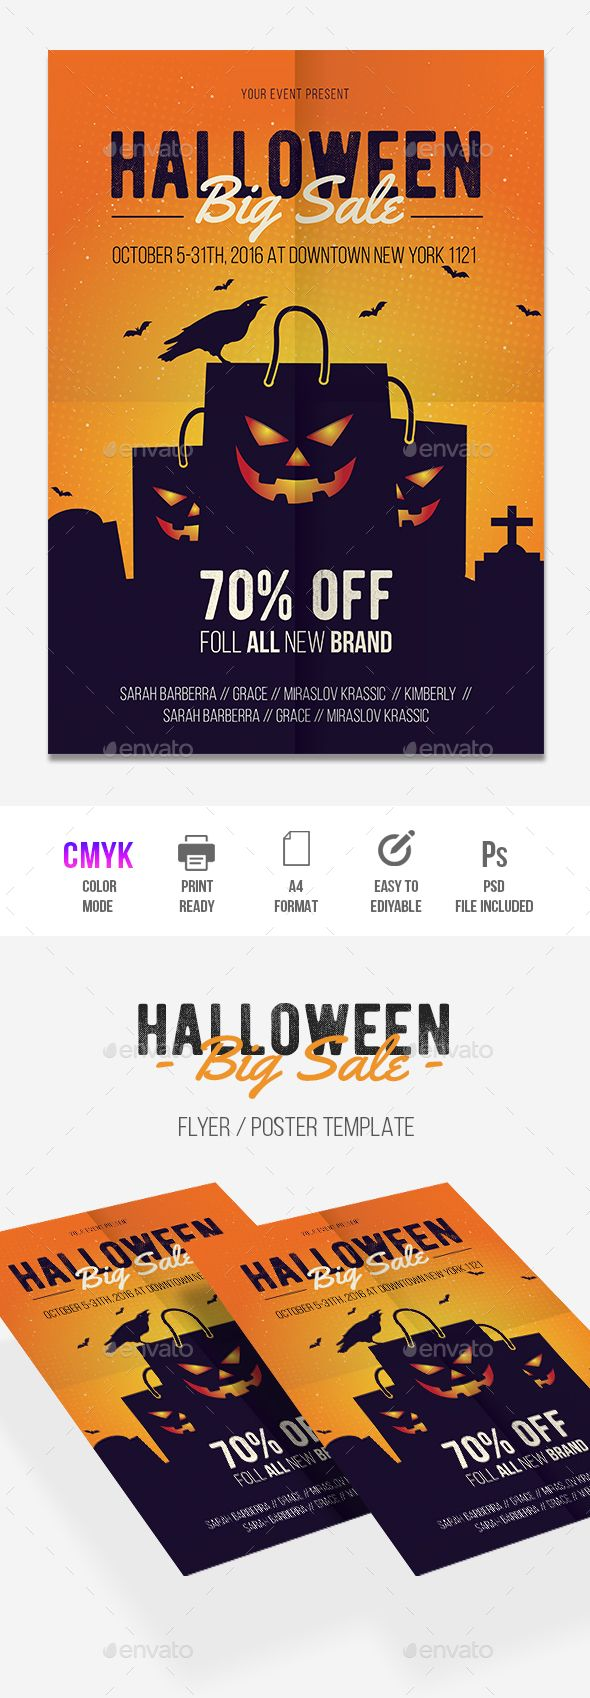 Halloween Sale Flyer Design Template - Holidays Events Flyer Template PSD, AI Illustrator. Download here: https://graphicriver.net/item/halloween-sale/17913955?ref=yinkira